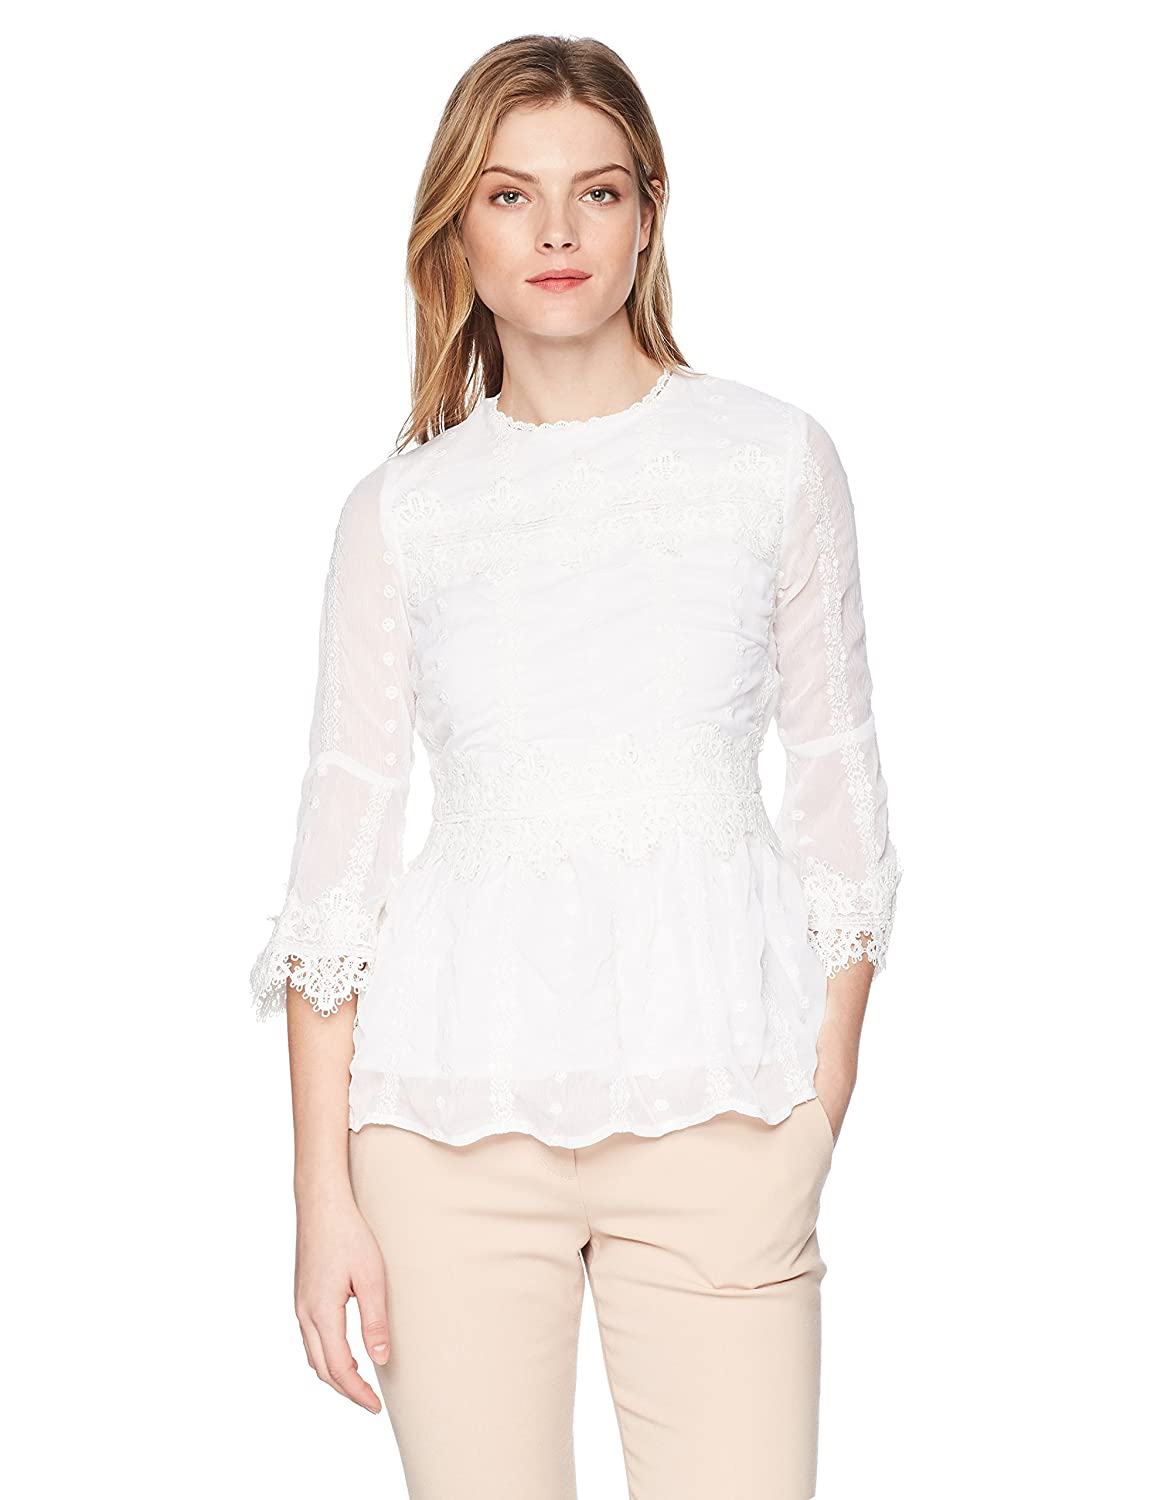 Nicole Miller New York Womens Lace 3//4 Sleeve Blouse